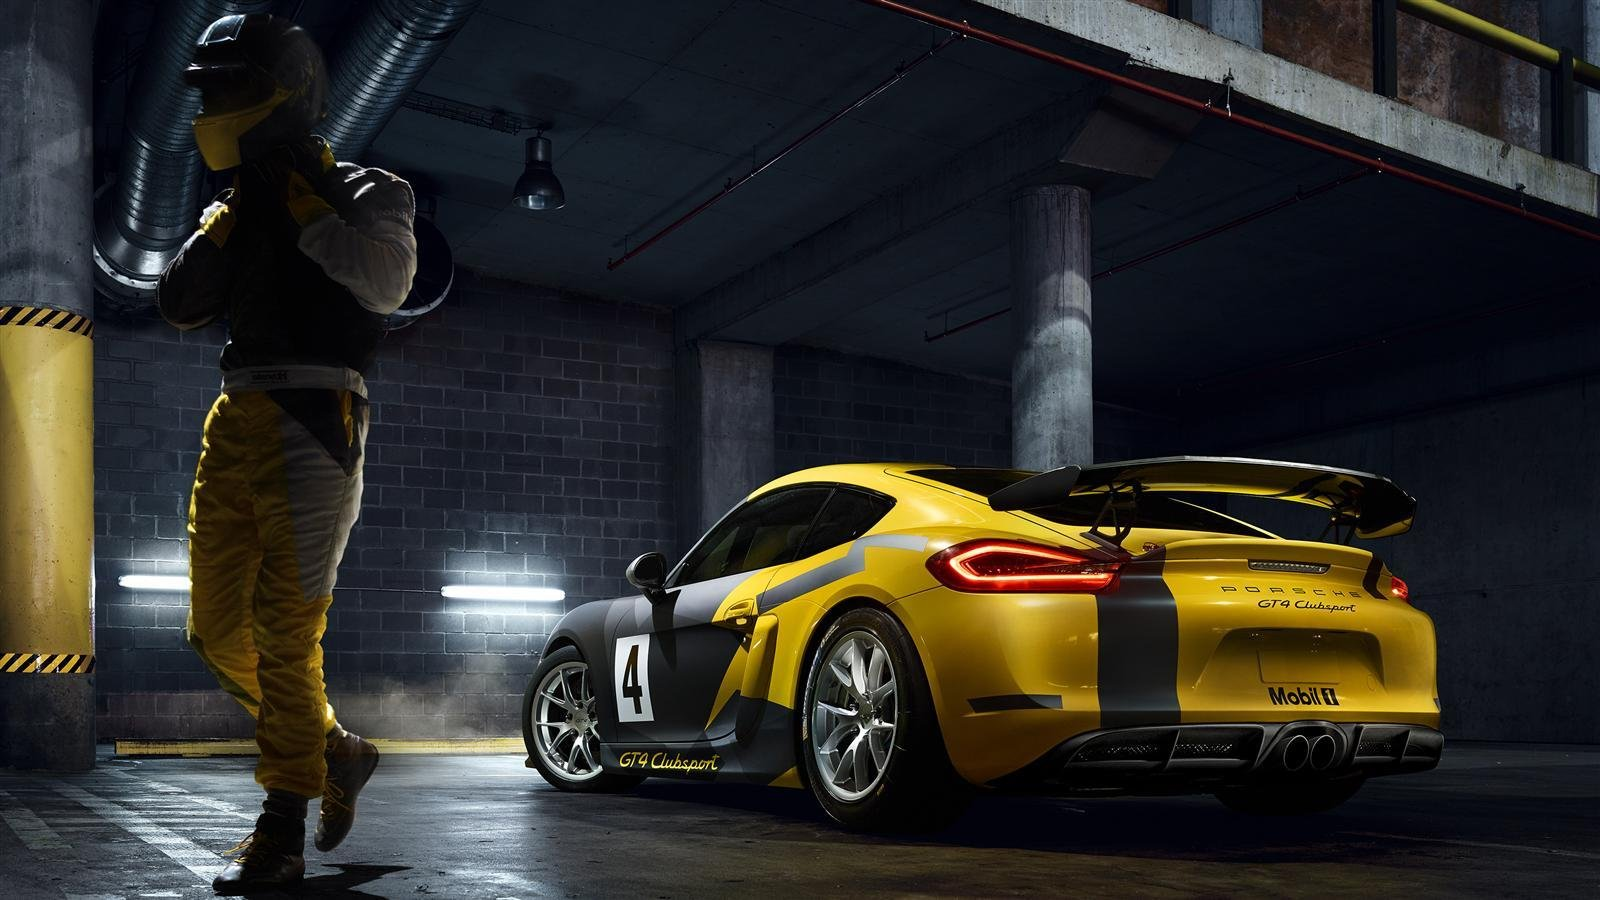 Porsche Cayman Wallpaper Cars 2016 Porsche Cayman Gt4 Clubsport Picture 656574 Car